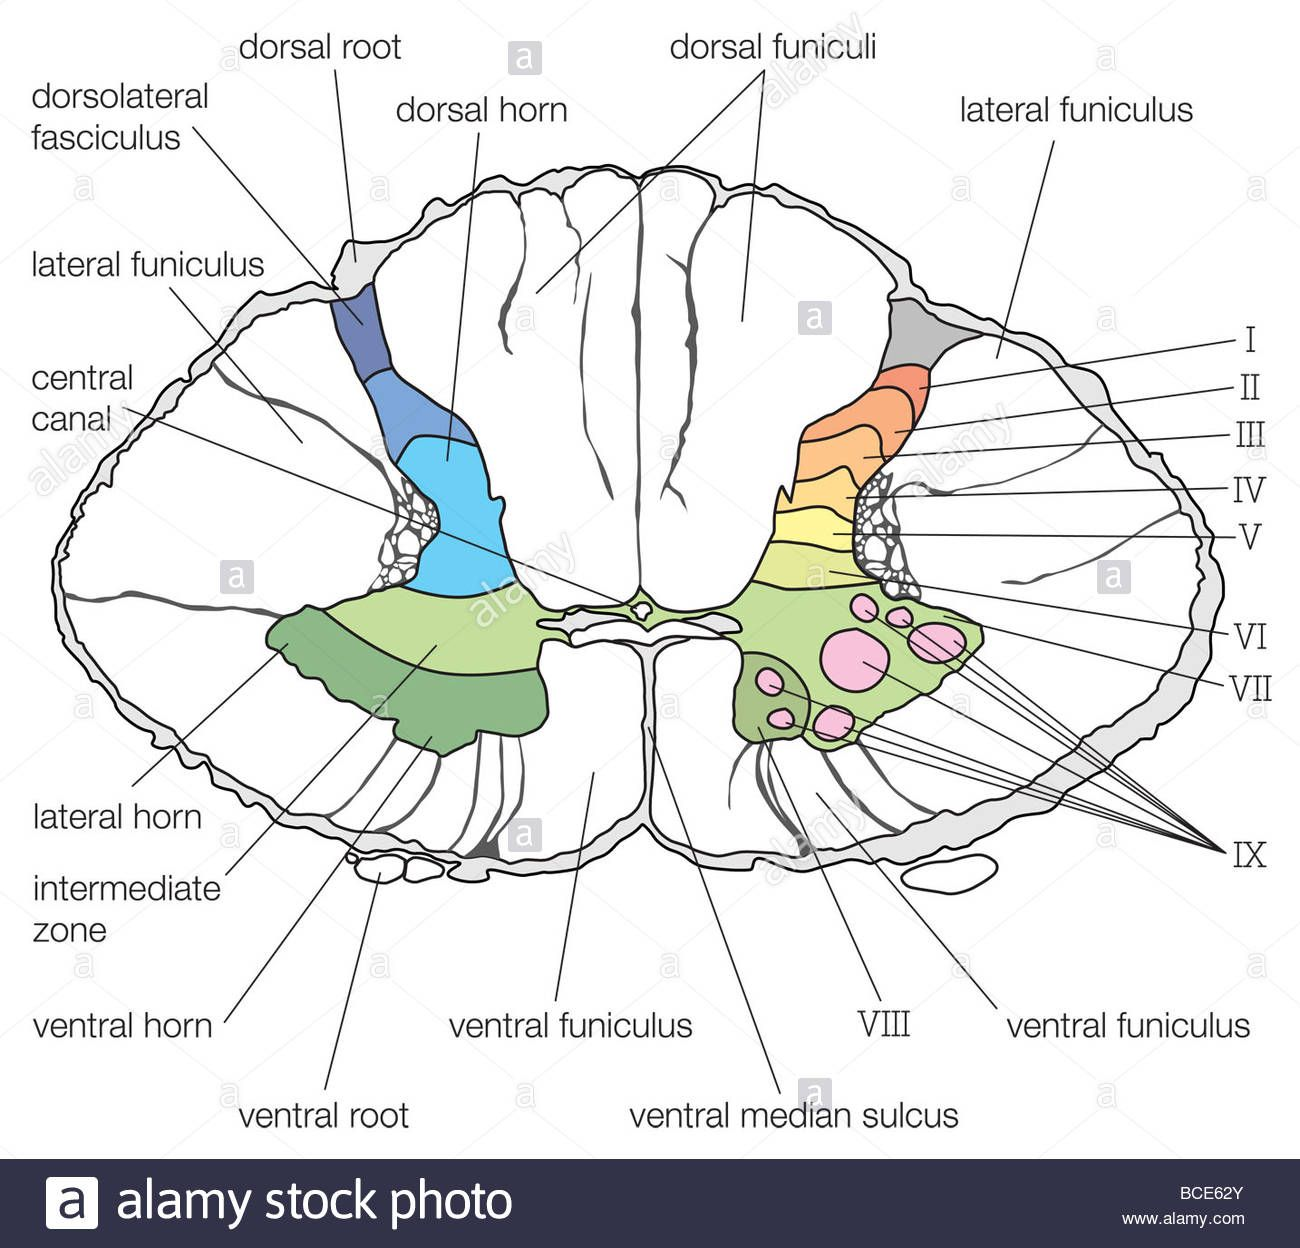 Spinal Cord Cross Section Diagram A Cross Section Of The Lower